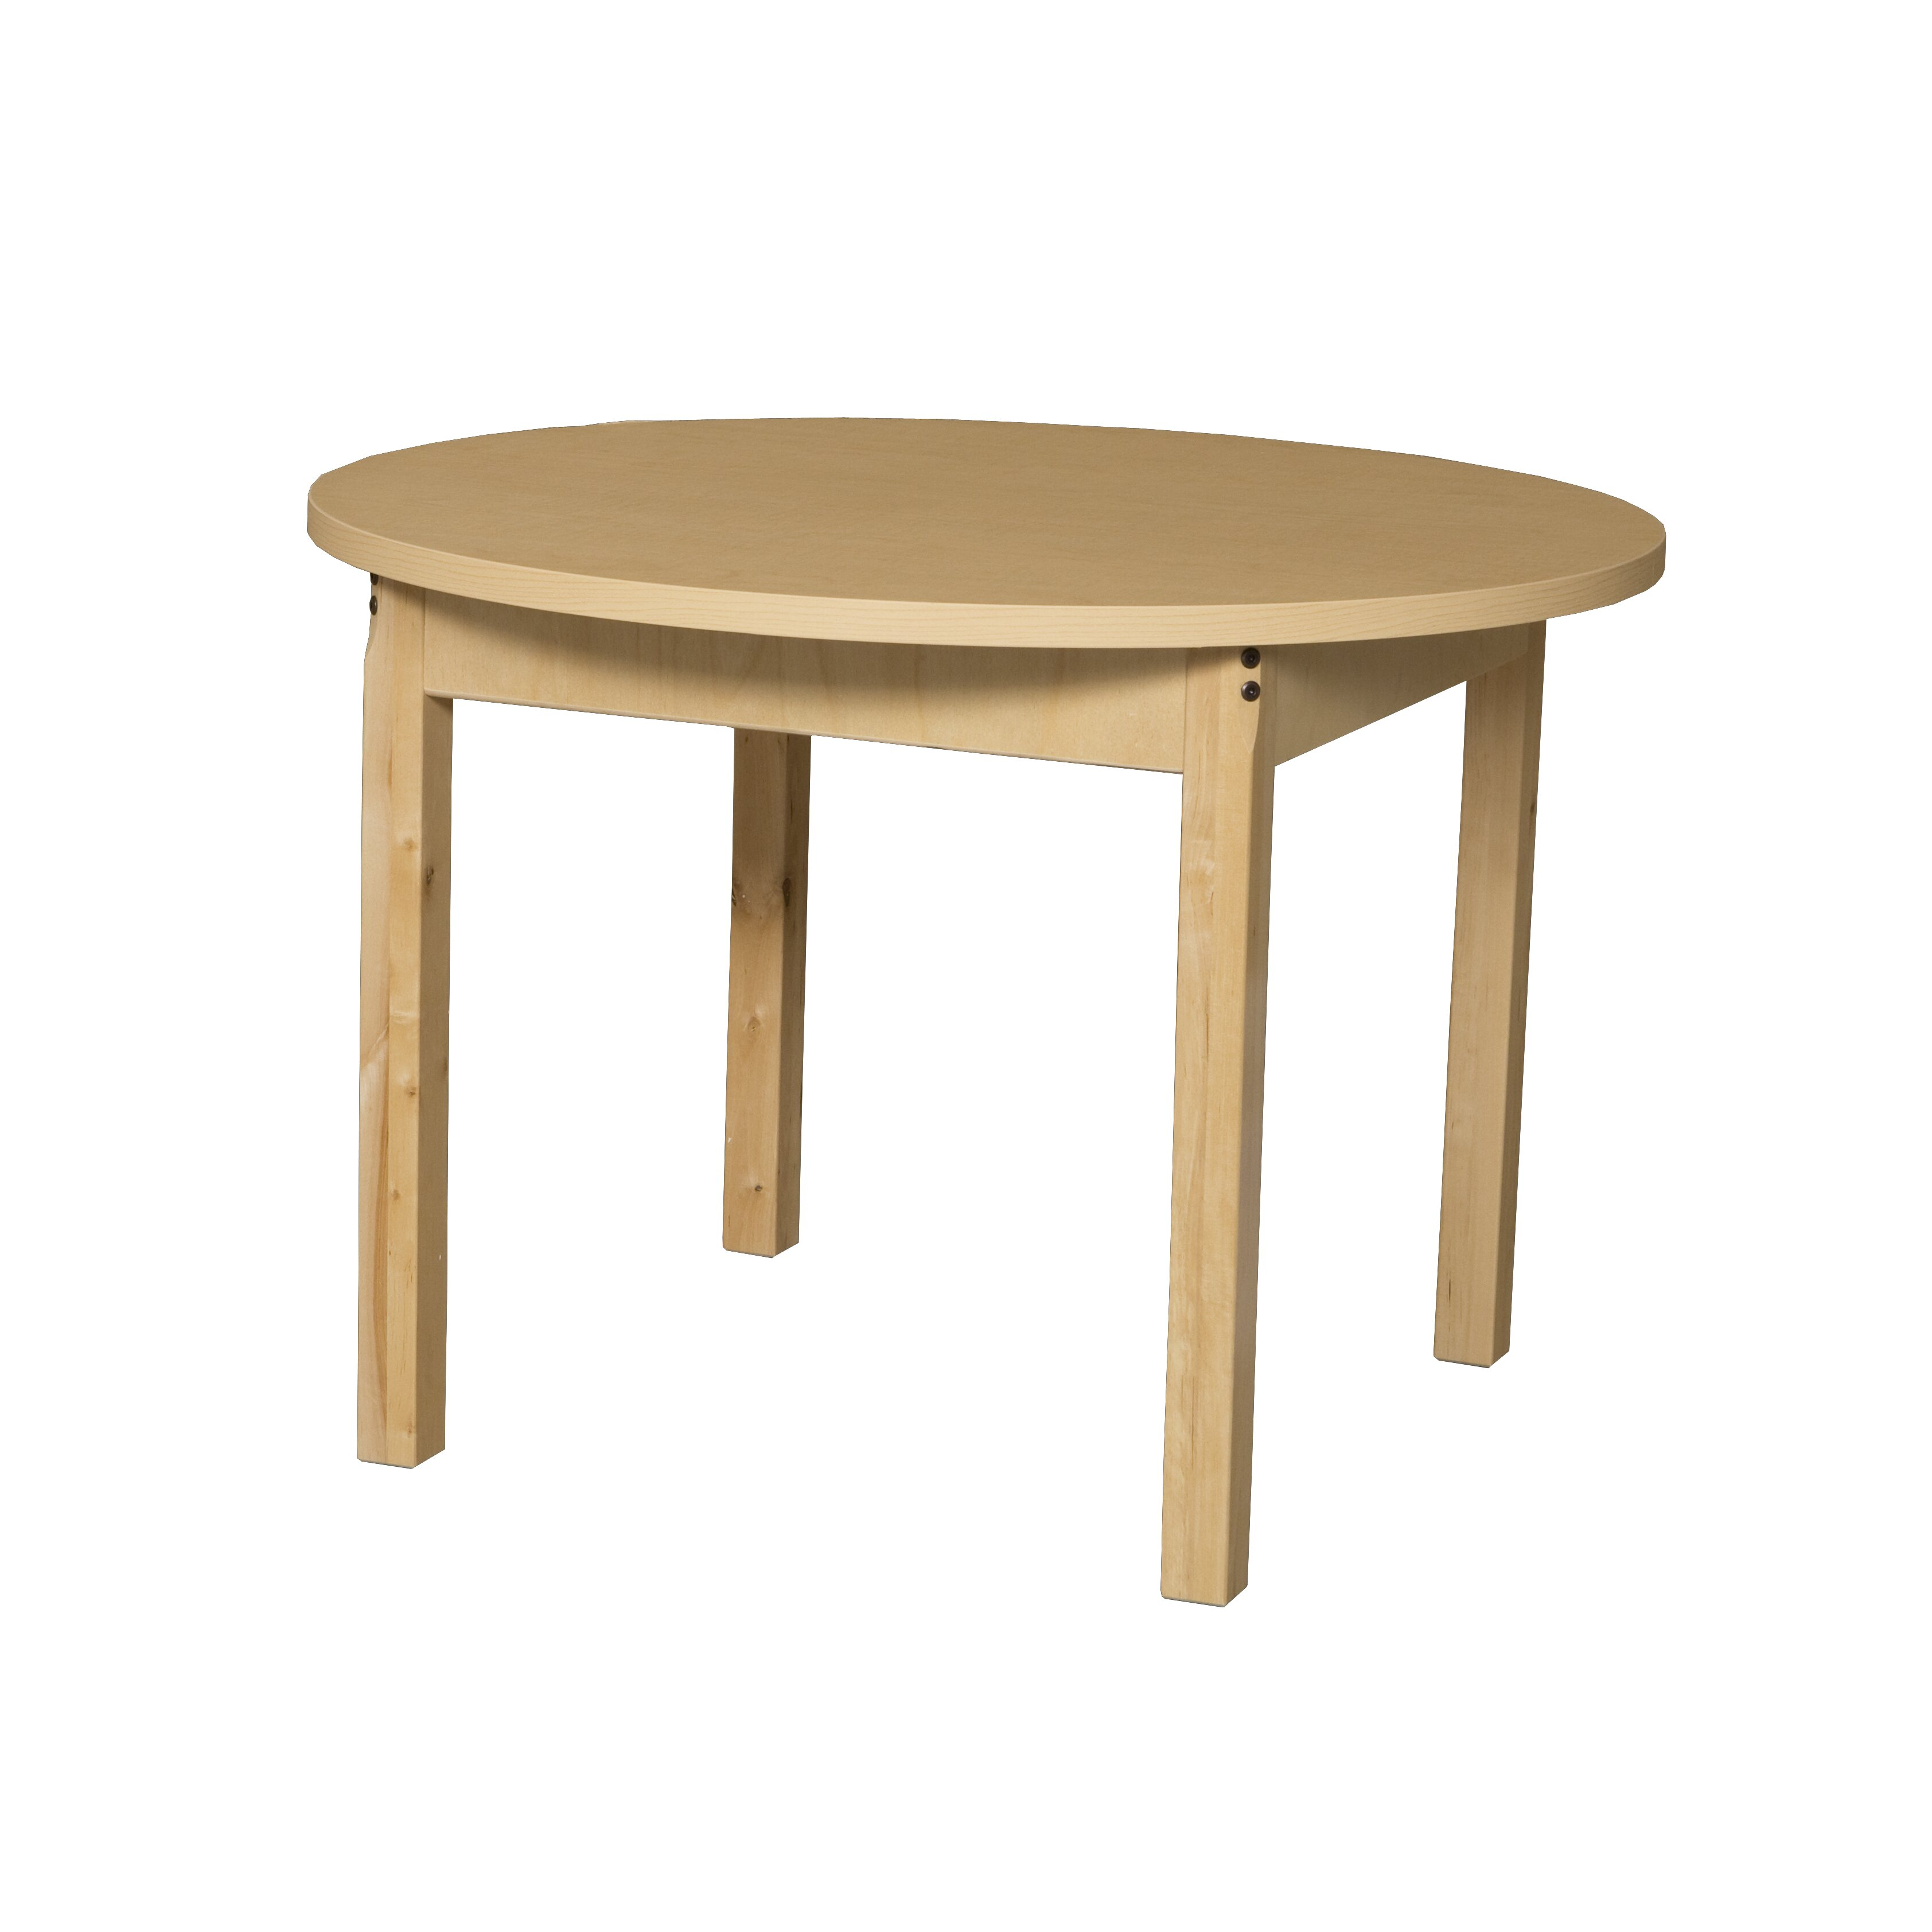 Wood designs round high pressure laminate table wayfair for High top table designs